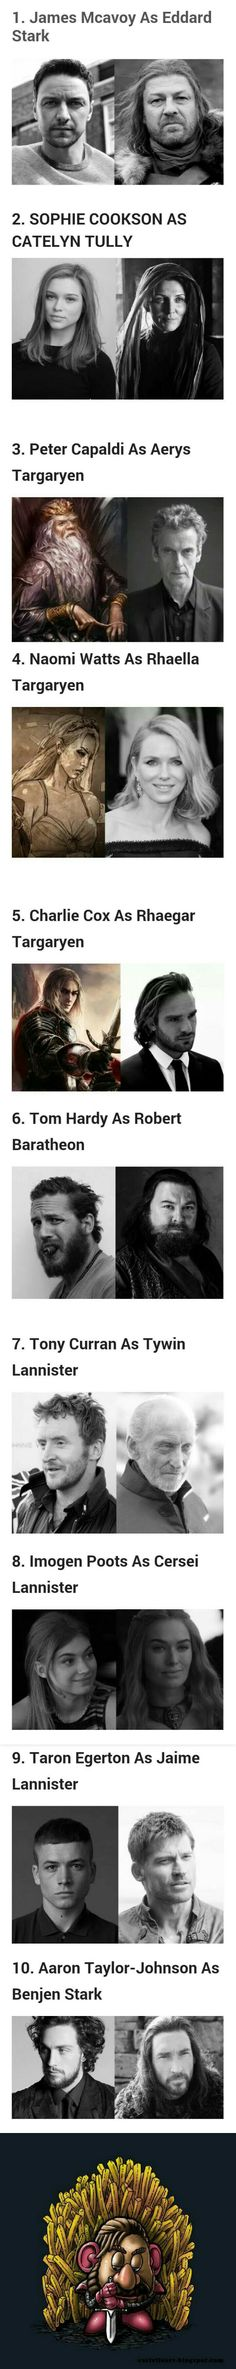 "10 actors who were approached by HBO as the cast of the Game of Thrones Prequel movie. (code named ""Robert's Rebellion"") - 9GAG"